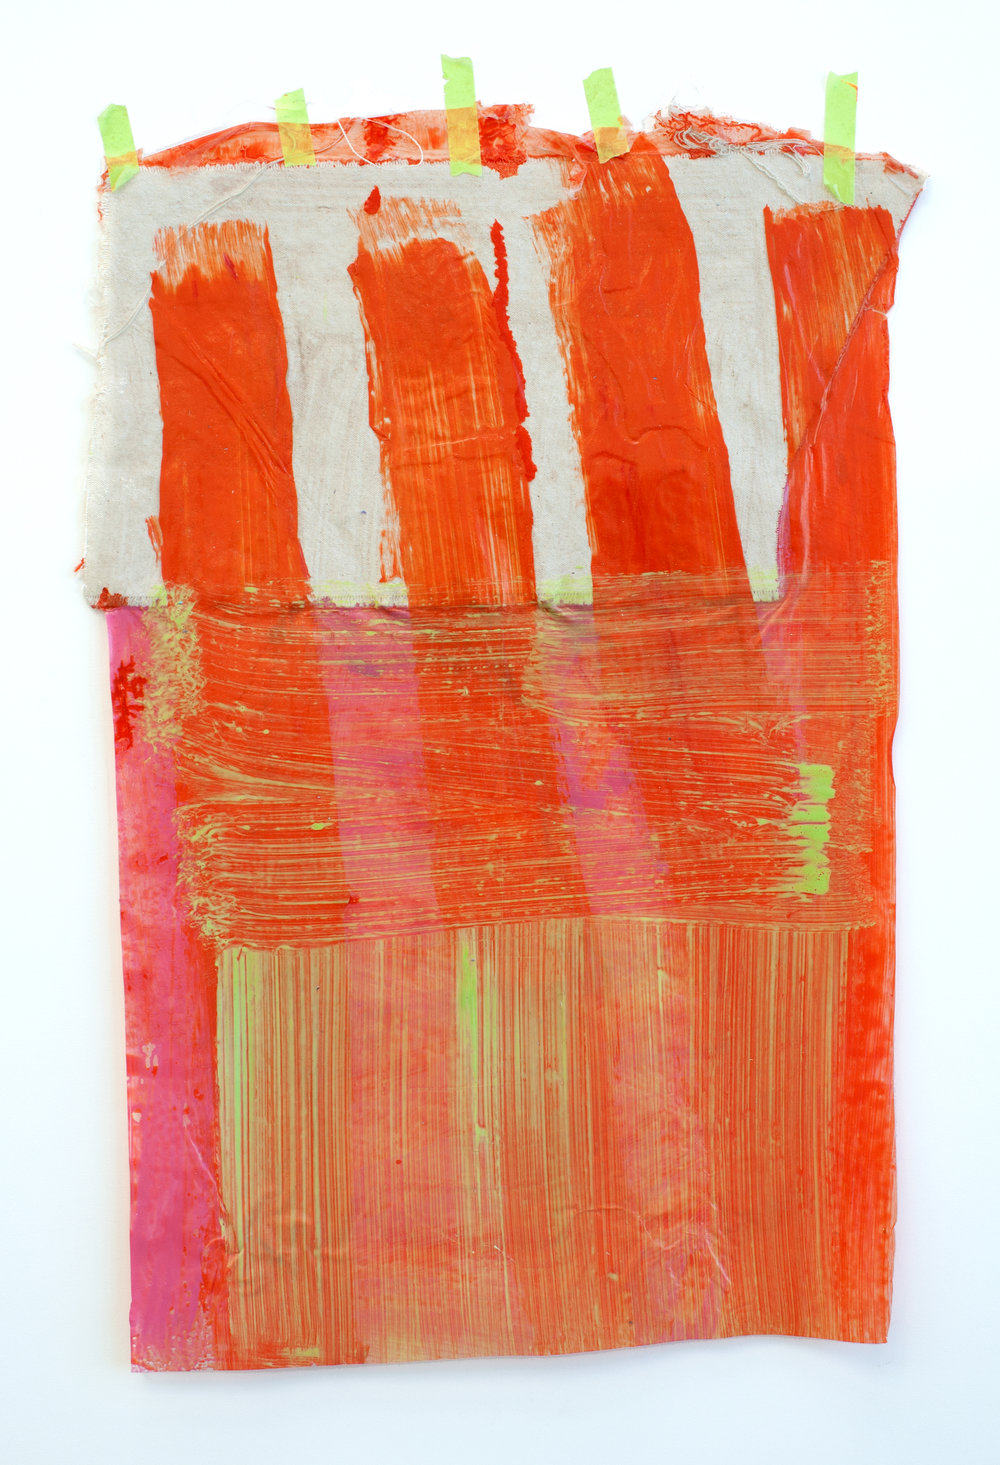 Untitled/Skin   2013  acrylic paint, canvas stuck to the wall  25x15in.